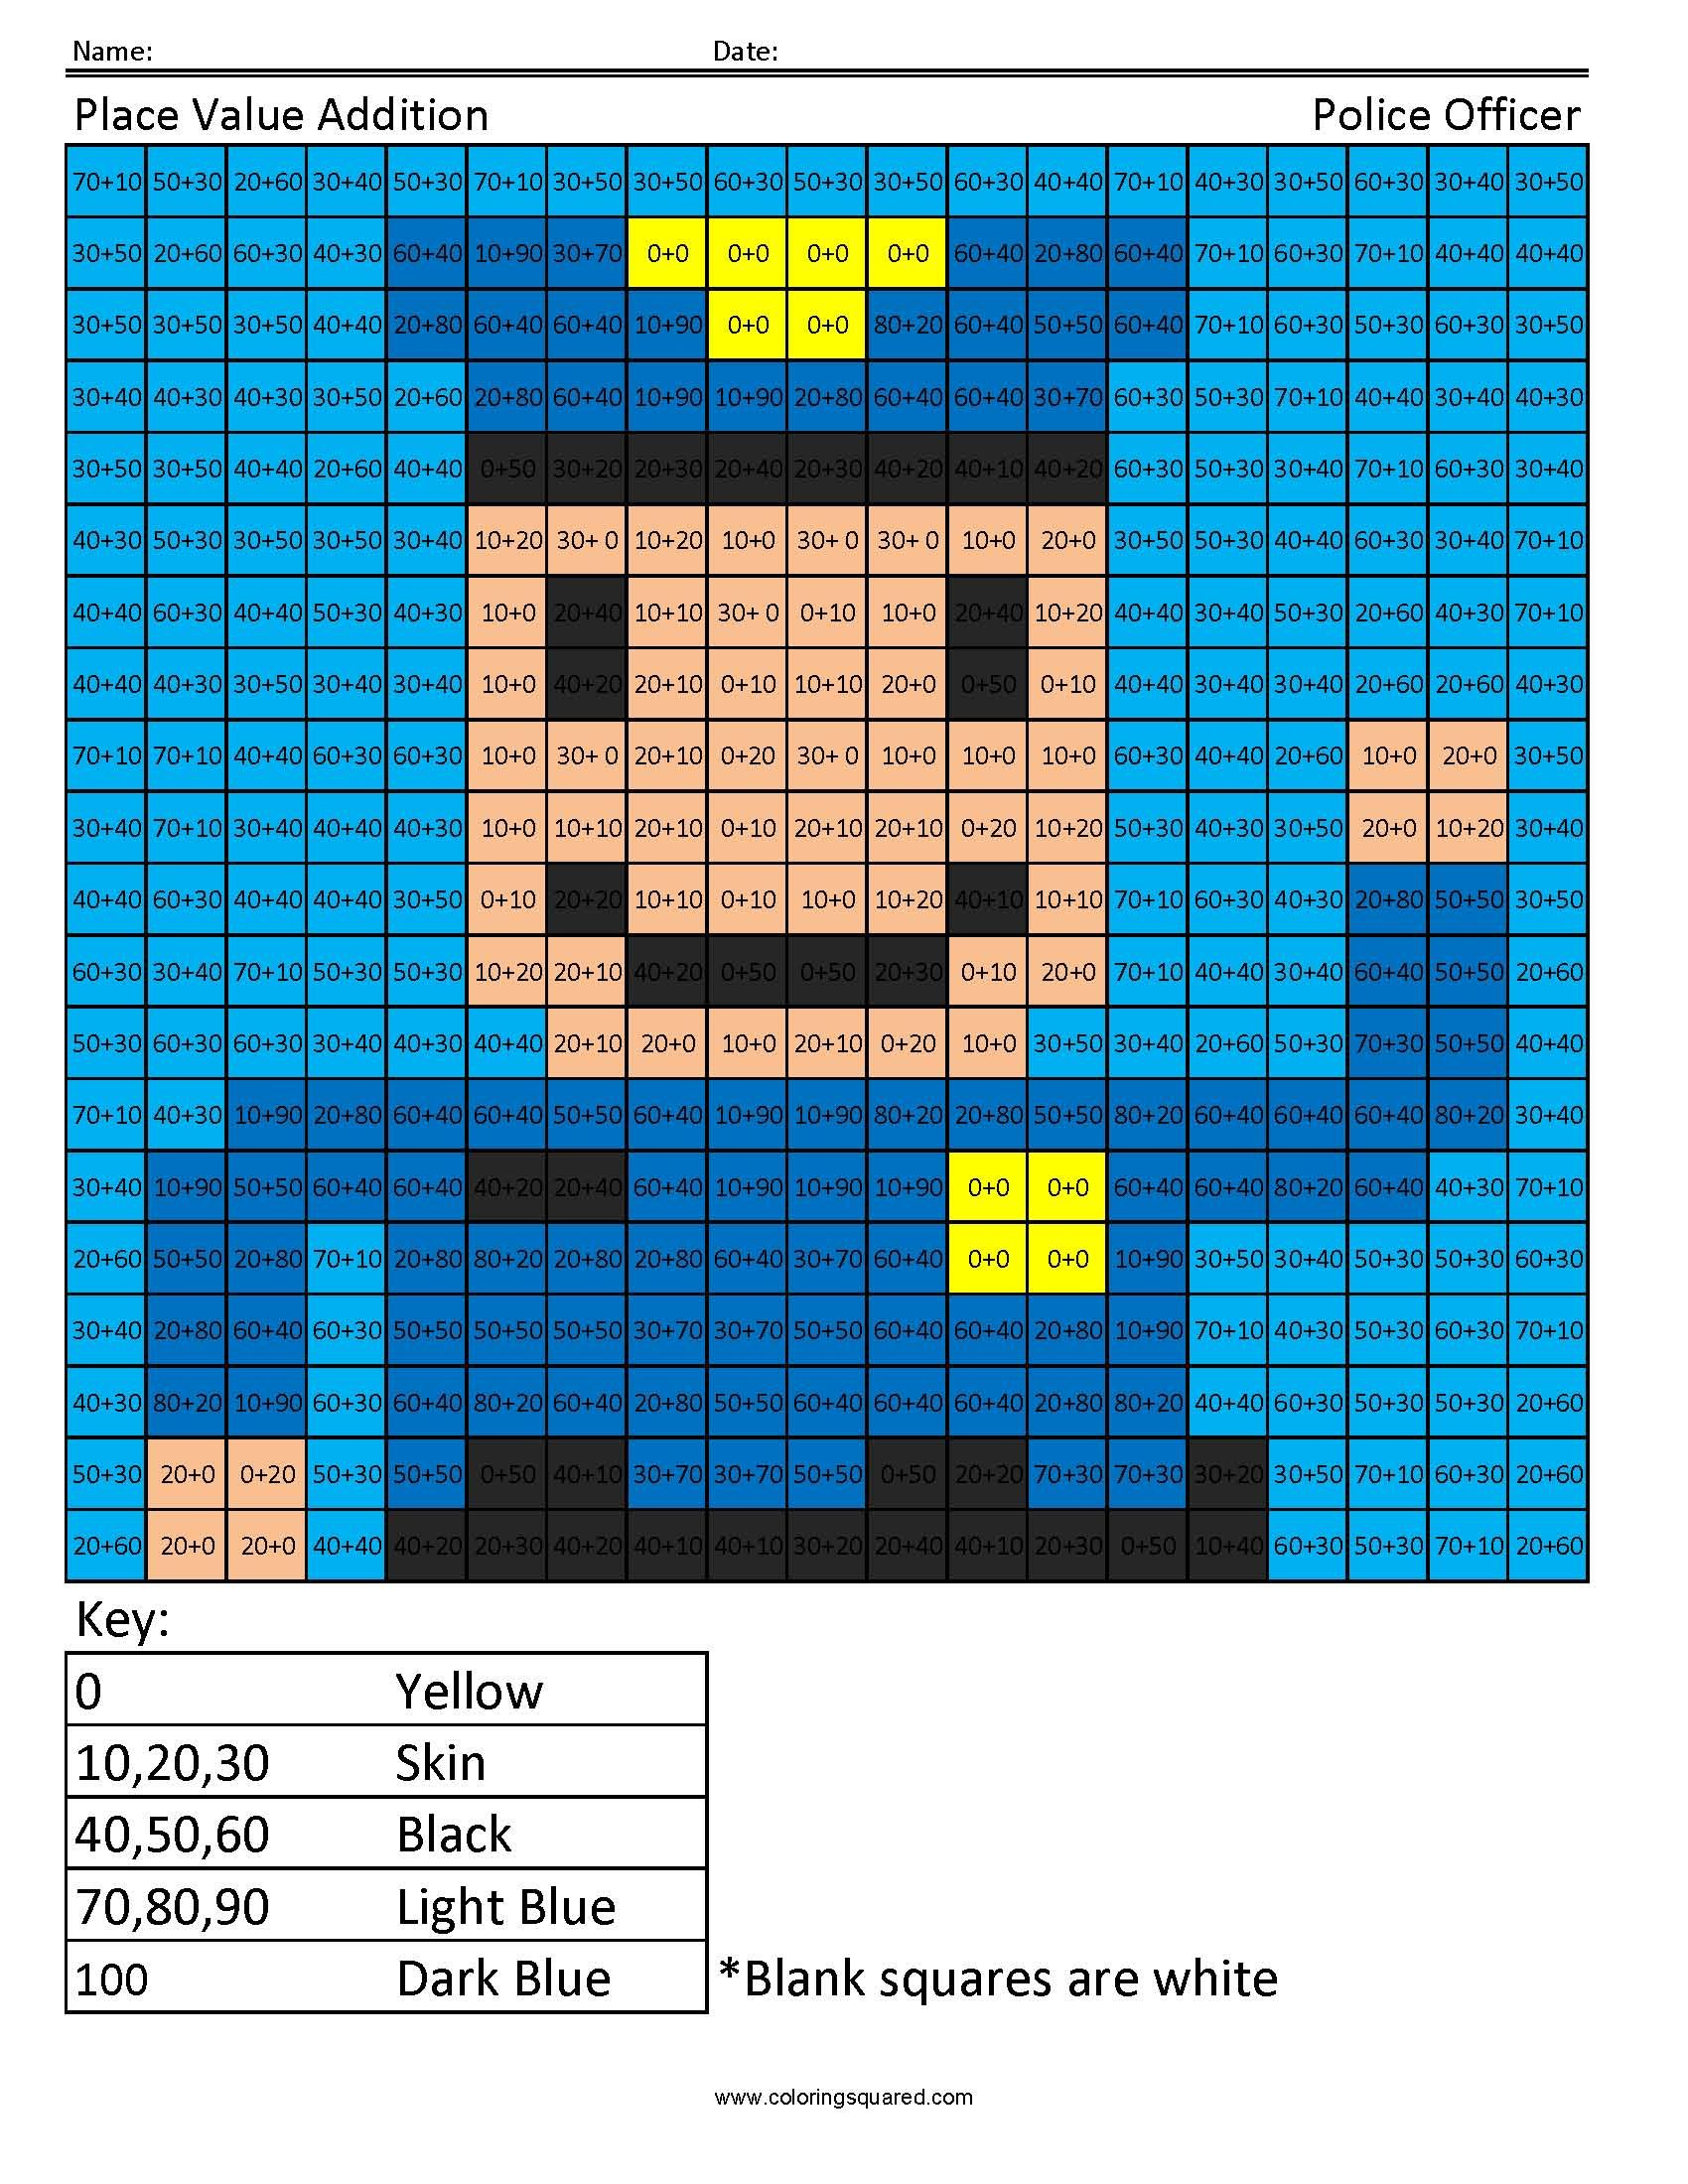 Math Concepts | Coloring Squared | Pinterest | Math, Math facts and ...